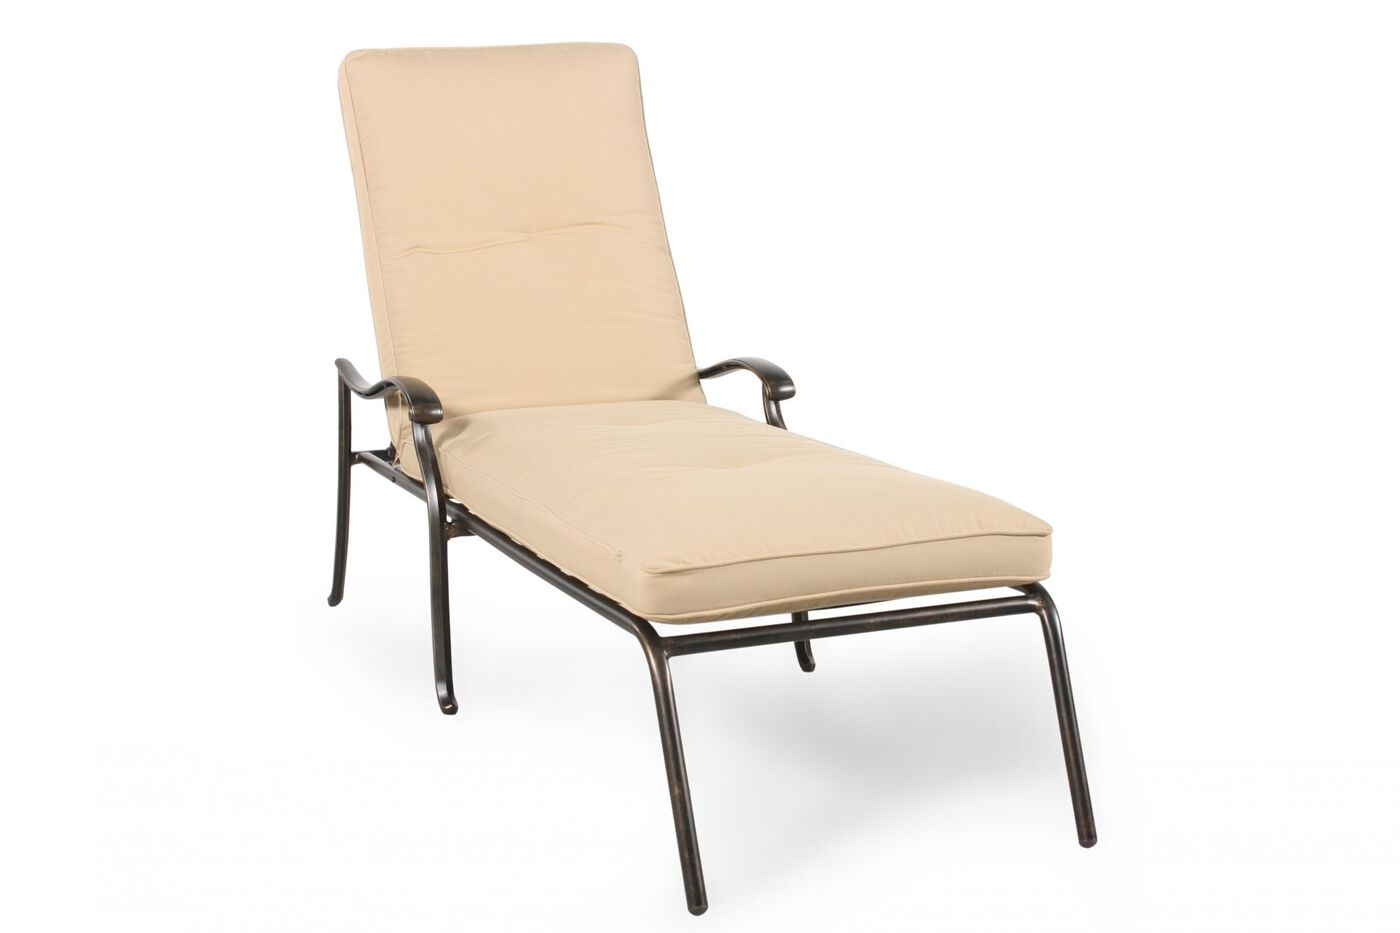 agio heritage select patio chaise lounge mathis brothers ForAgio Heritage Chaise Lounge